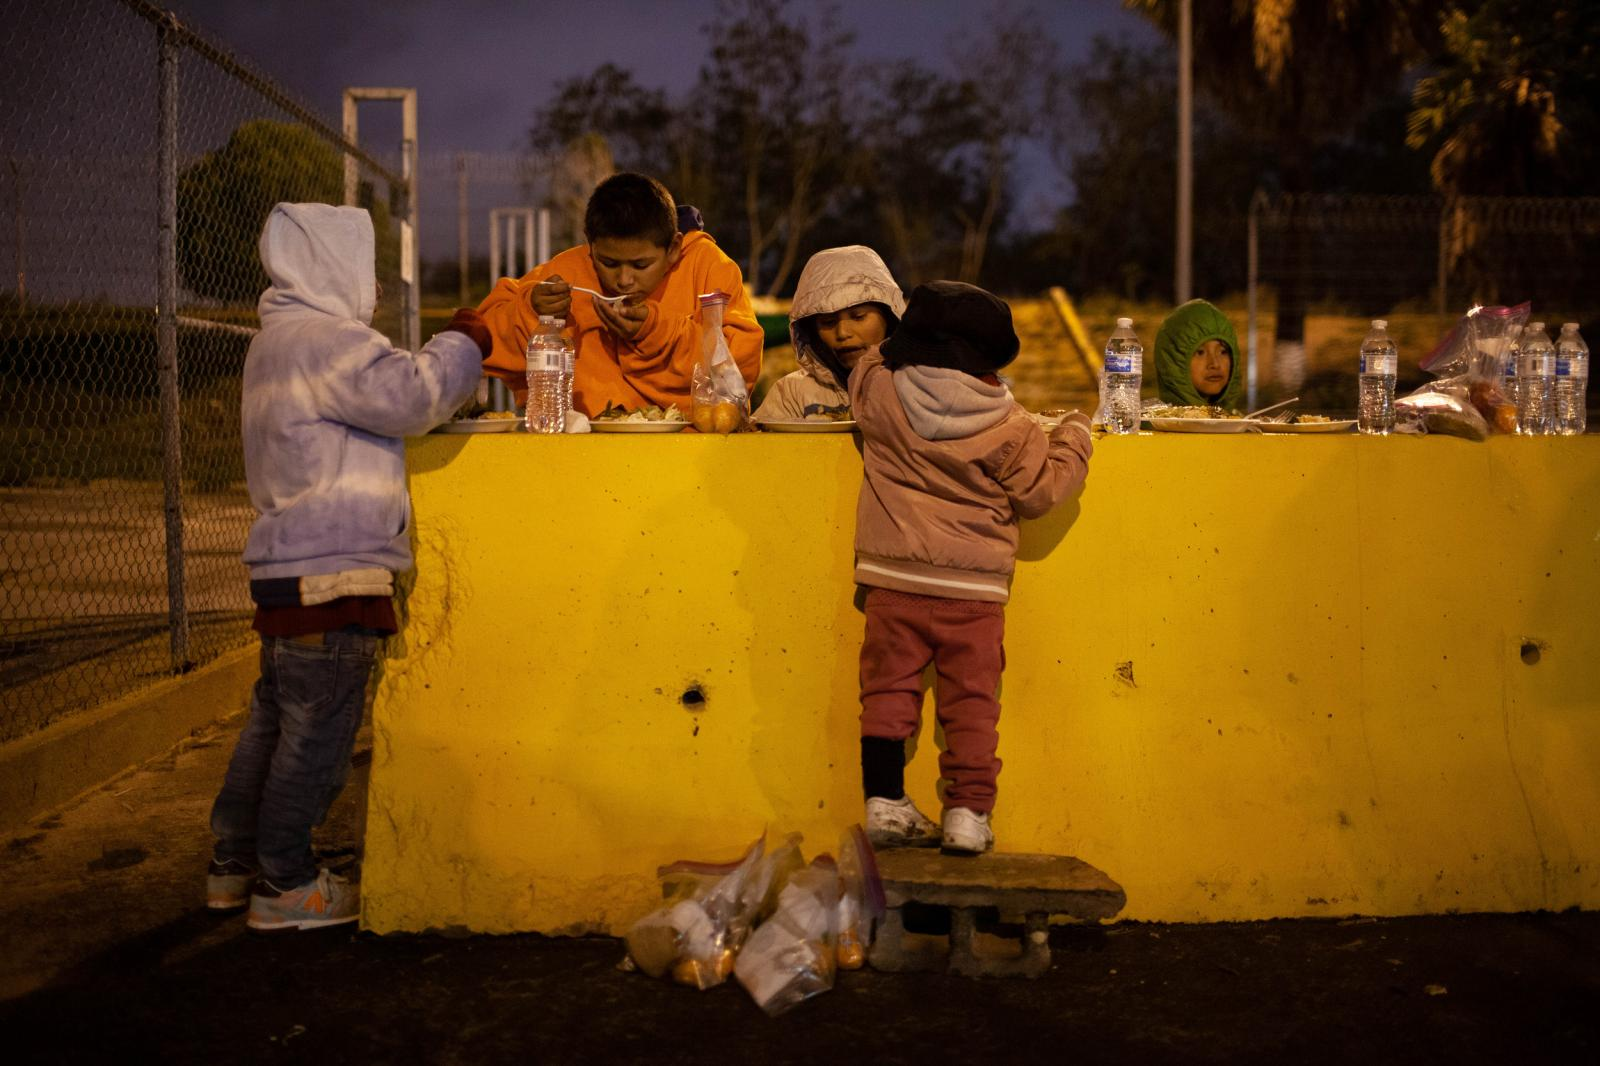 The numbers of people waiting to claim asylum swelled during the first few months of 2019. In February, Benavides would see roughly 50 people a day waiting for him. On this particular night there are over a 150 men, women and children waiting in line for dinner. Team Brownsville loaded up three wagons with seven tents, water, two large containers of rice and beans, twenty boxes of pizza, hula hoops and one size nine and a half shoes.